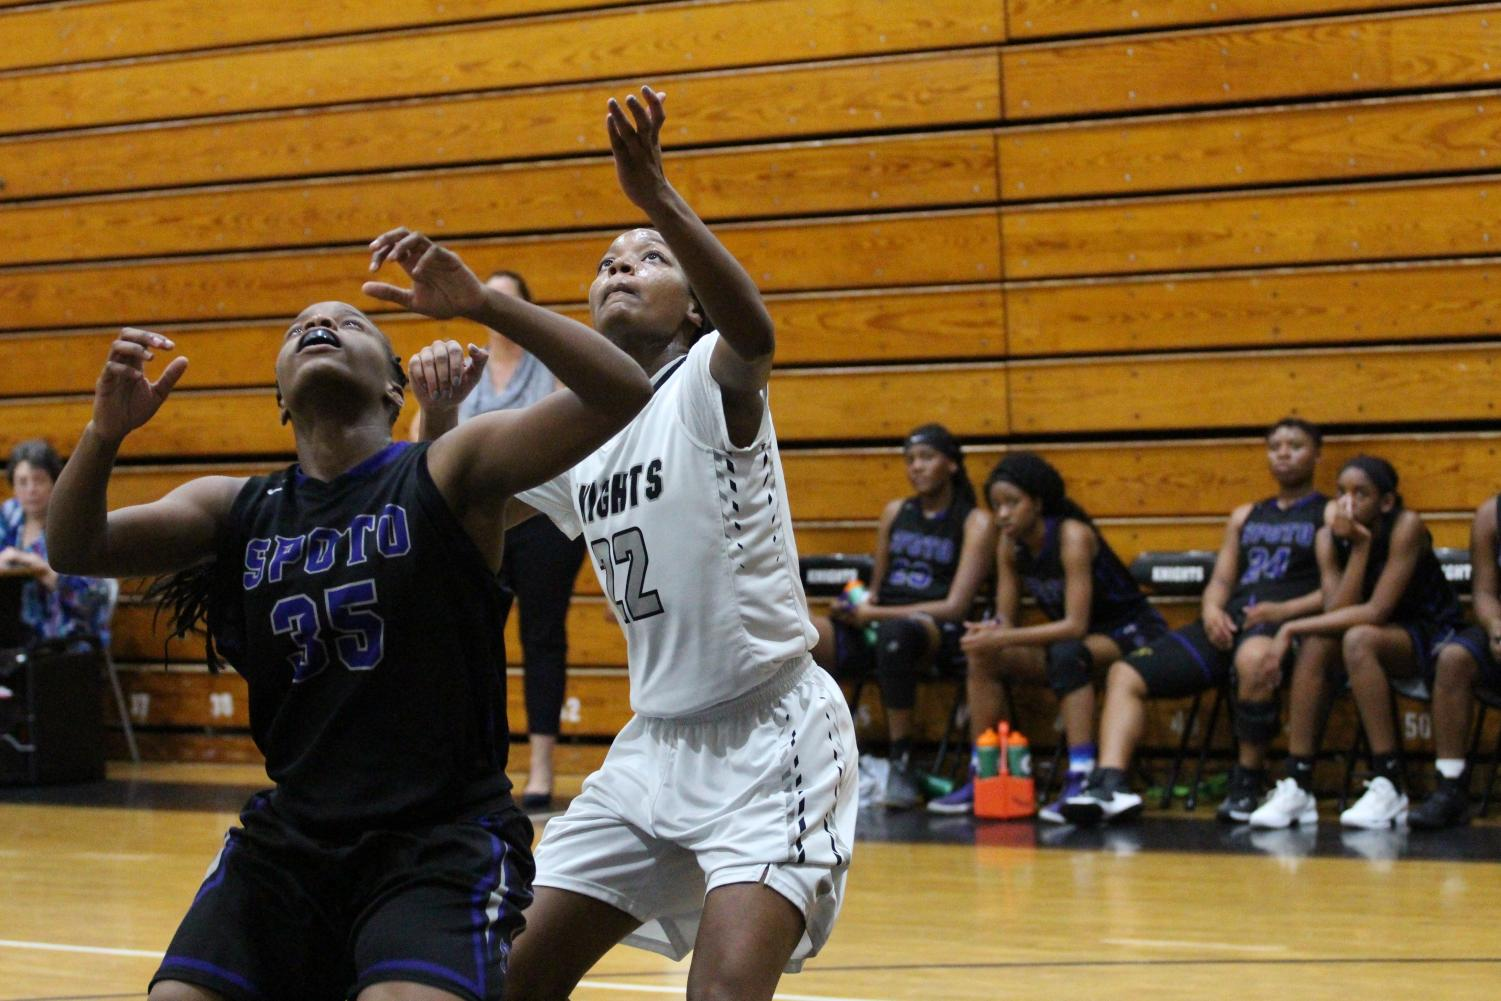 Girls basketball captain Christiana Rolack ('18) goes up for a rebound while plaing Spoto in the district finals on Wednesday, Feb. 7.